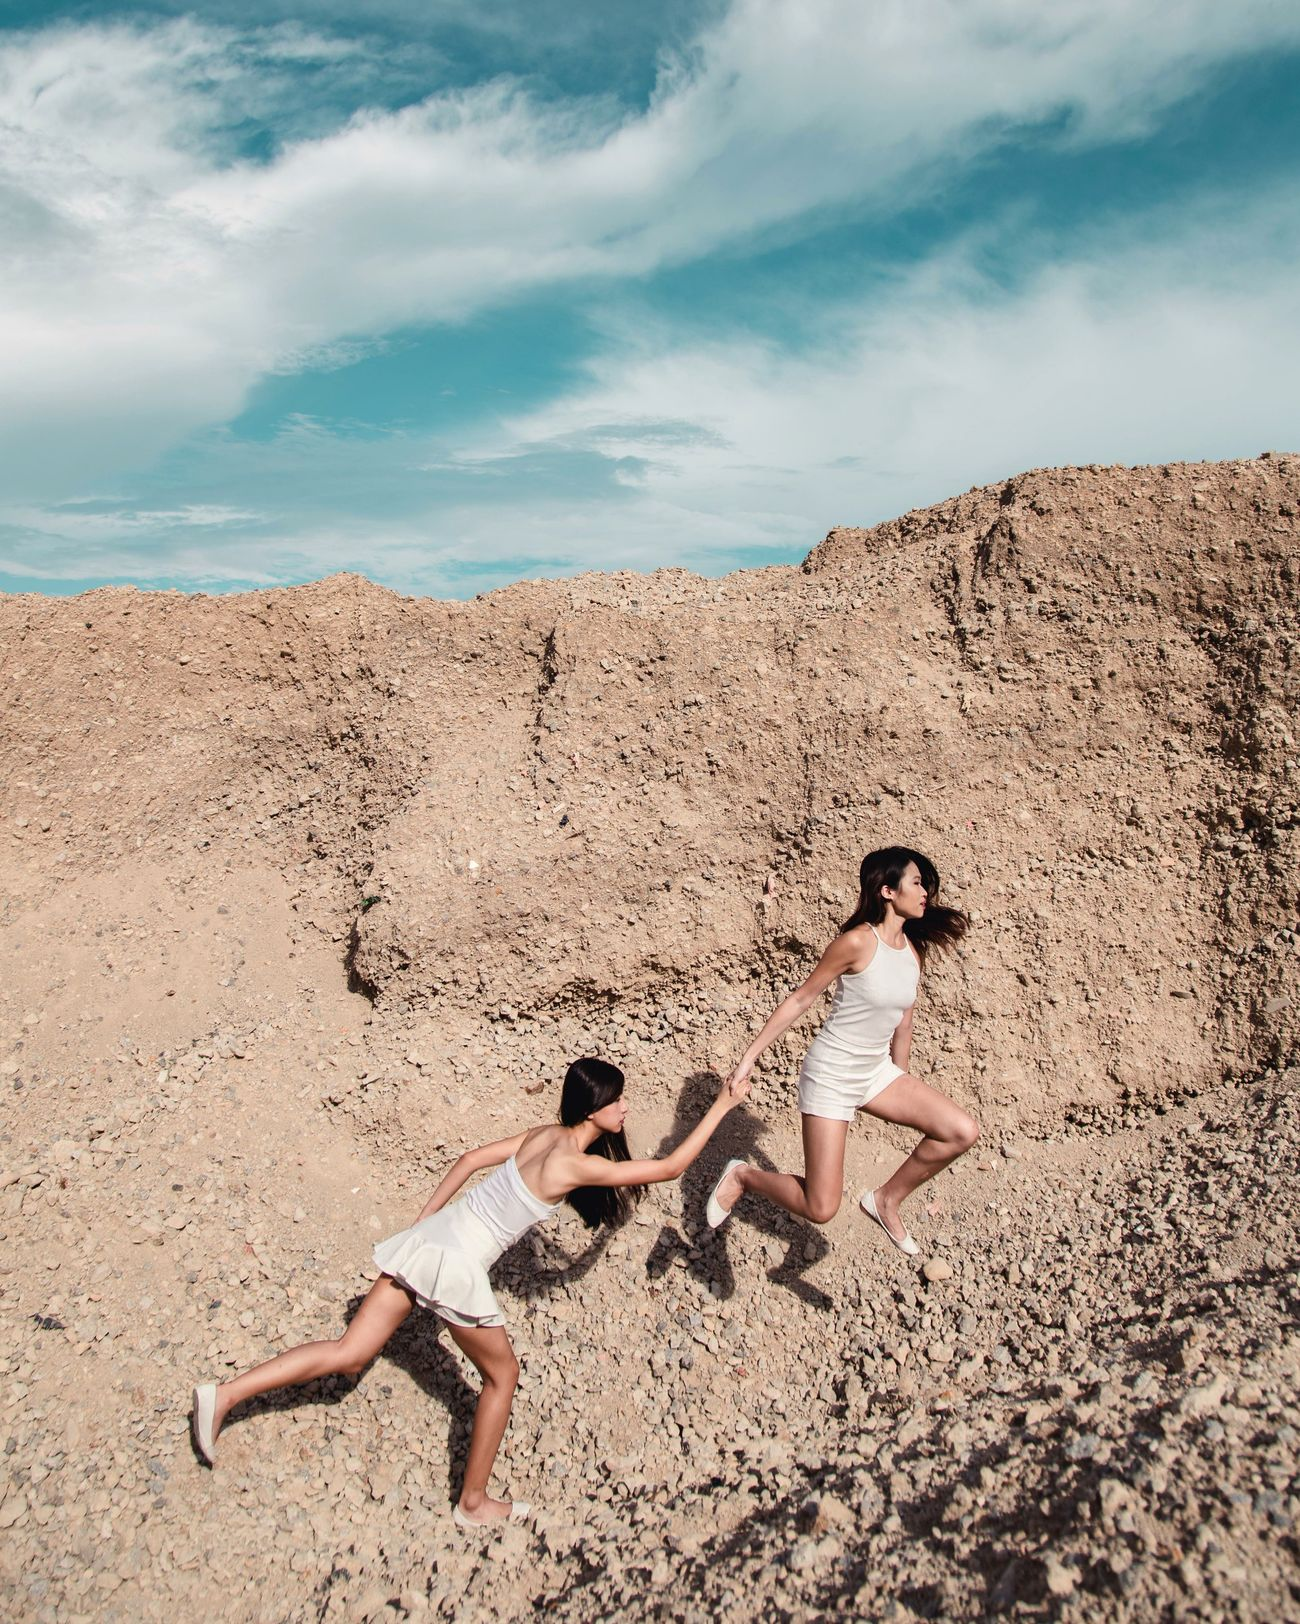 Leap of faith Sand Beach Summer Two People Girls Togetherness Friendship Females Outdoors Sand Dune The Portraitist - 2017 EyeEm Awards Light Women Around The World Portrait Photography Beautiful People Light Collection Place Of Heart The Great Outdoors - 2017 EyeEm Awards Leap Of Faith